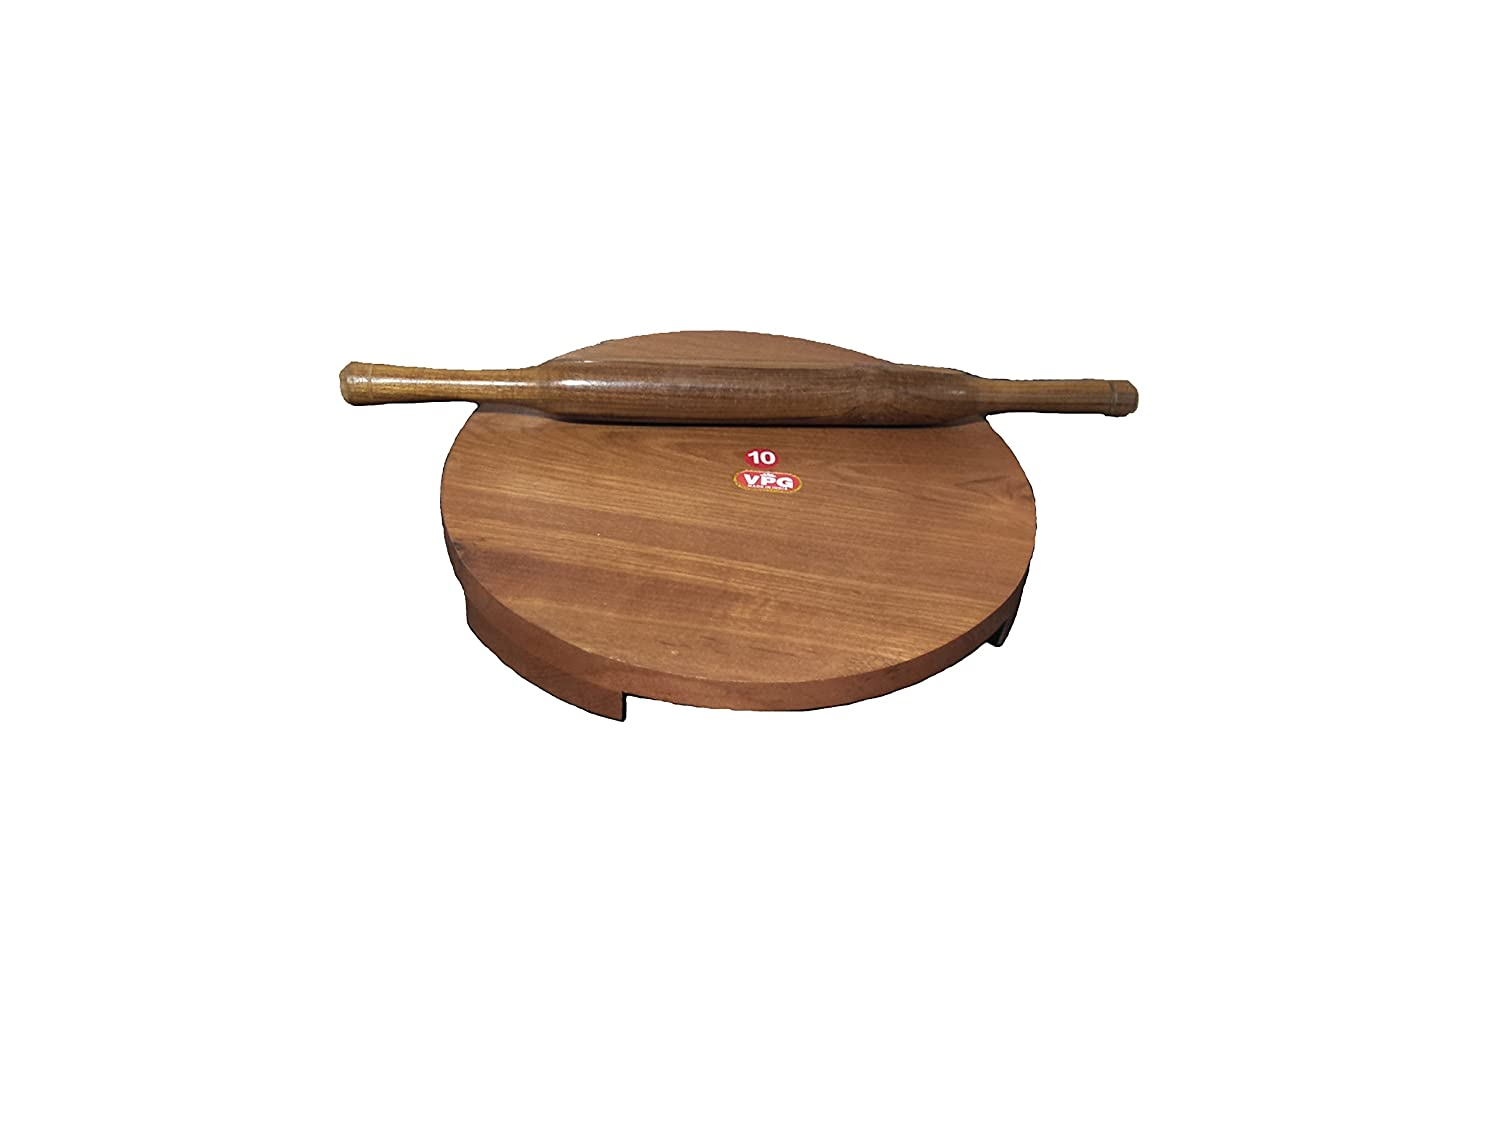 G&D Brown Wooden chakla belan And Rolling Pin,Wooden Chakla Belan 9.5 inch/Sheesham Wood